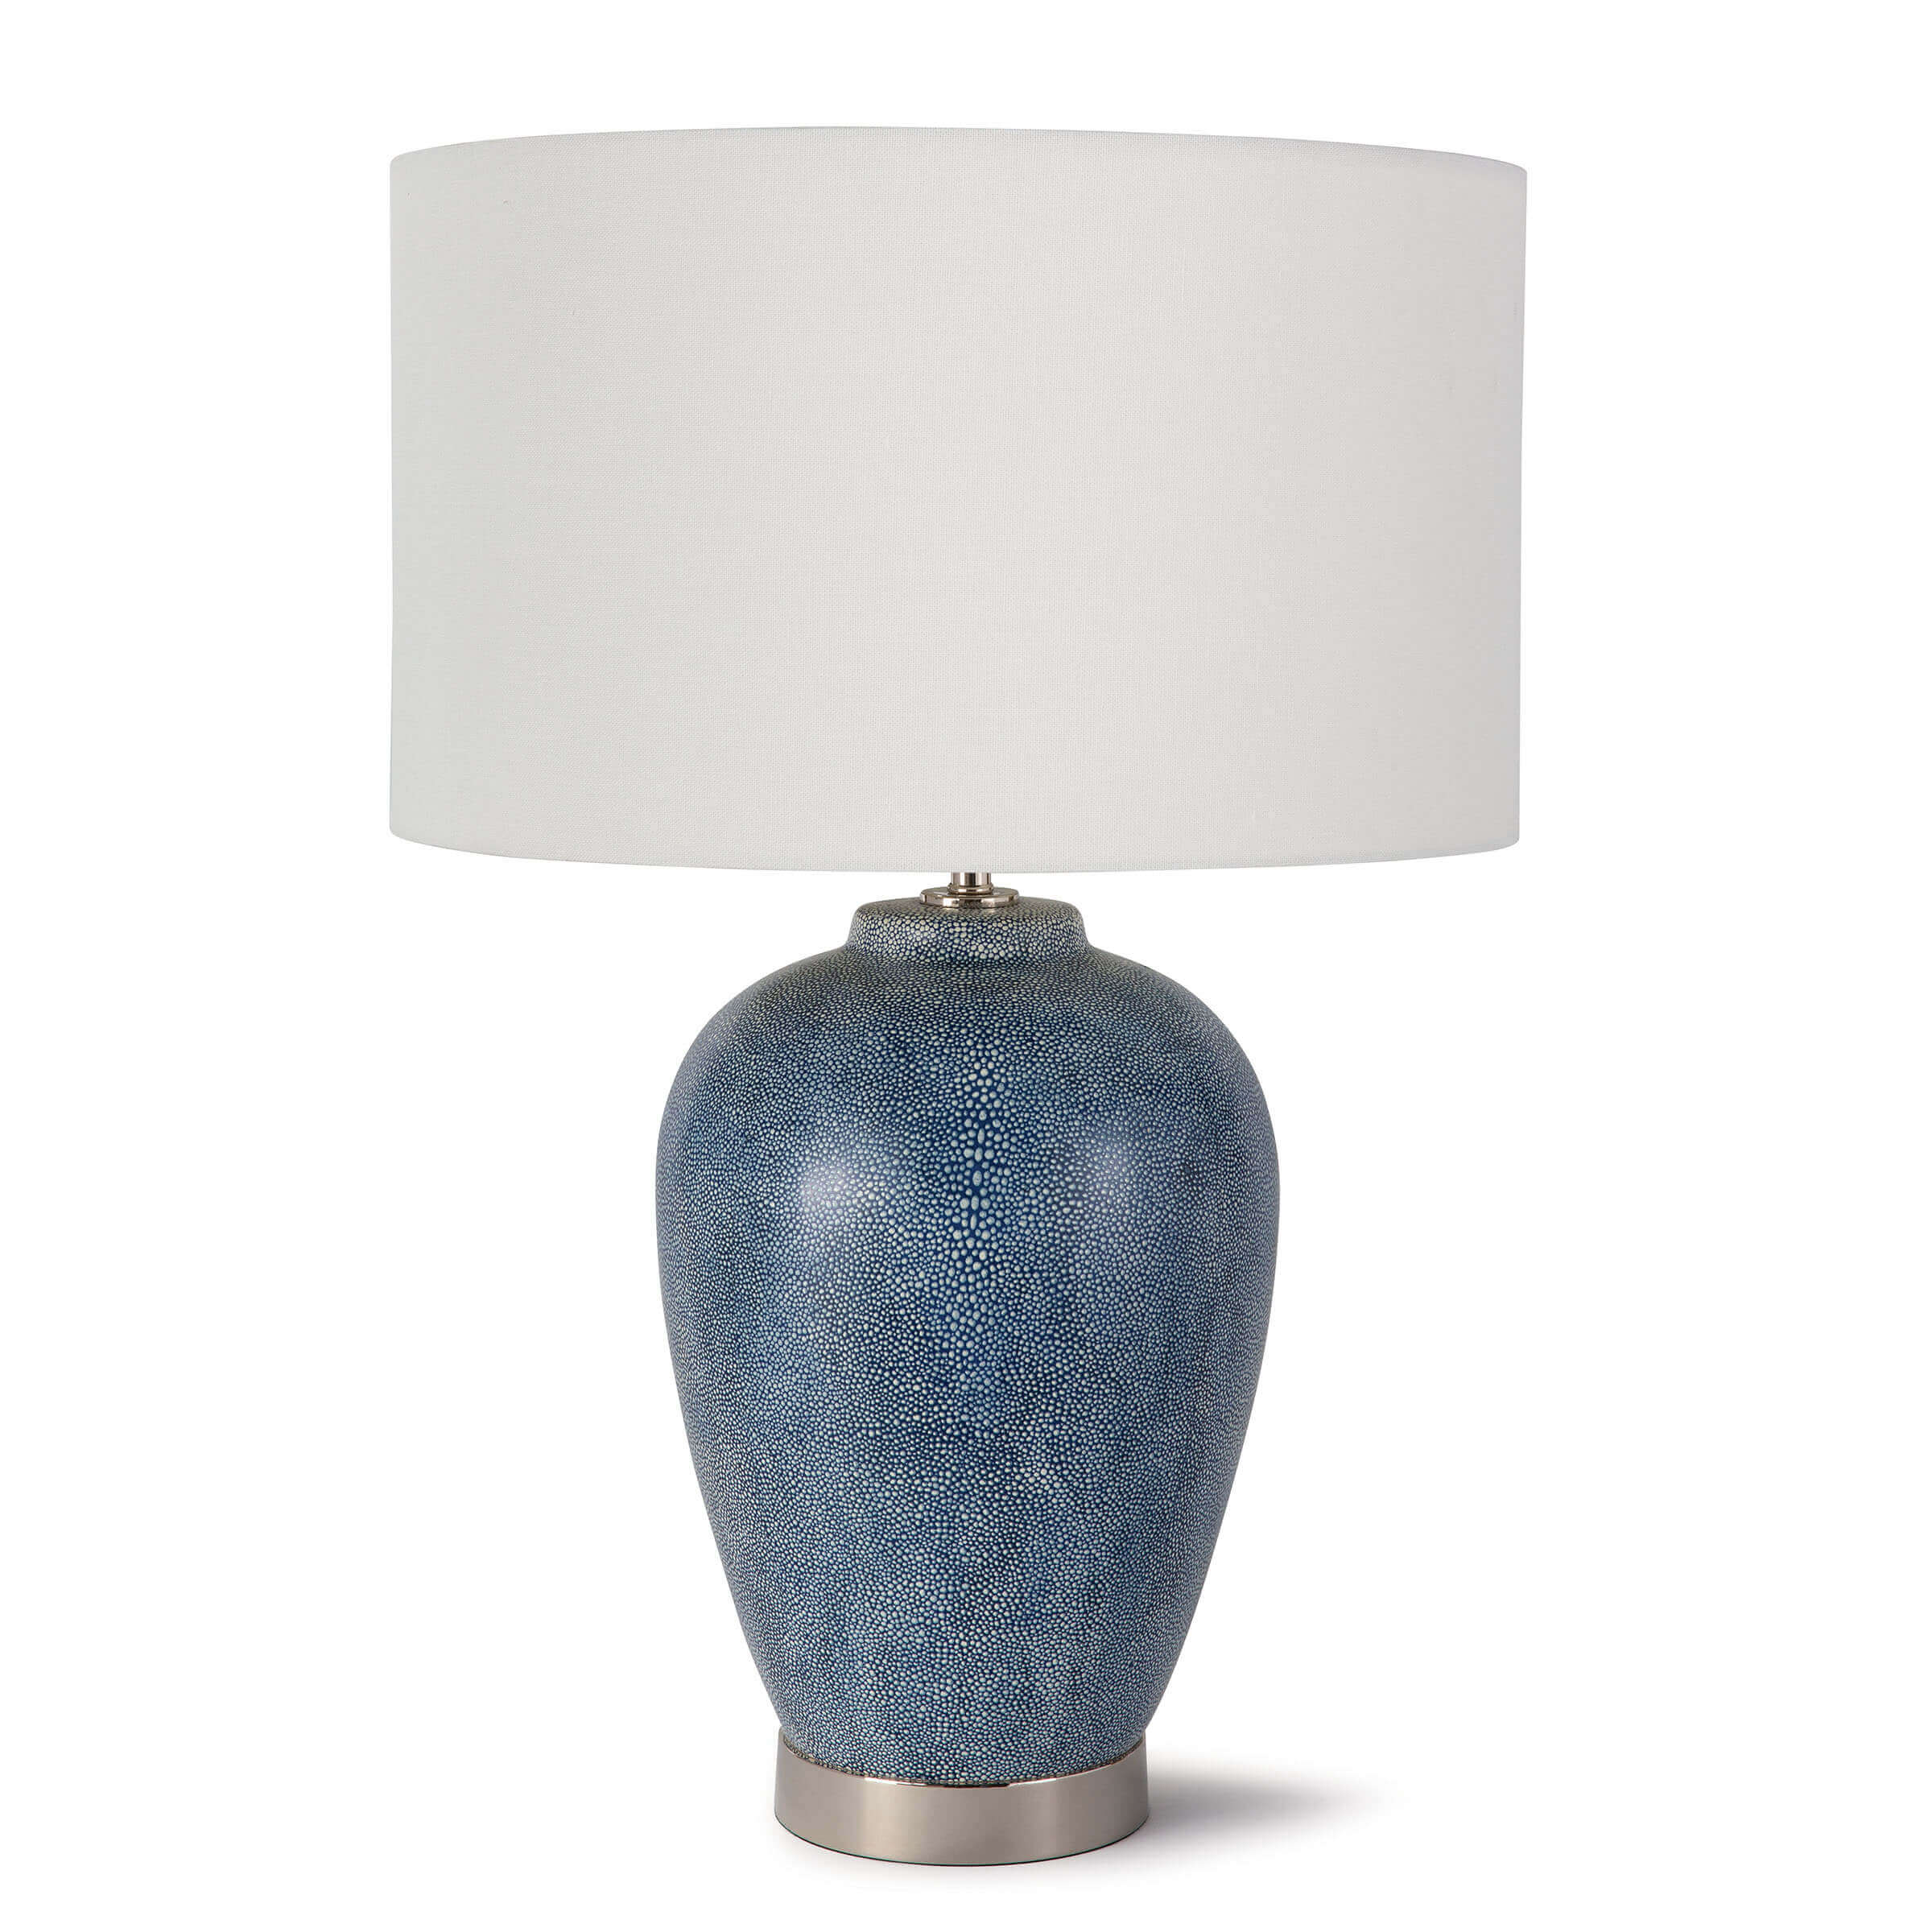 Presley Table Lamp Indigo | Regina Andrew